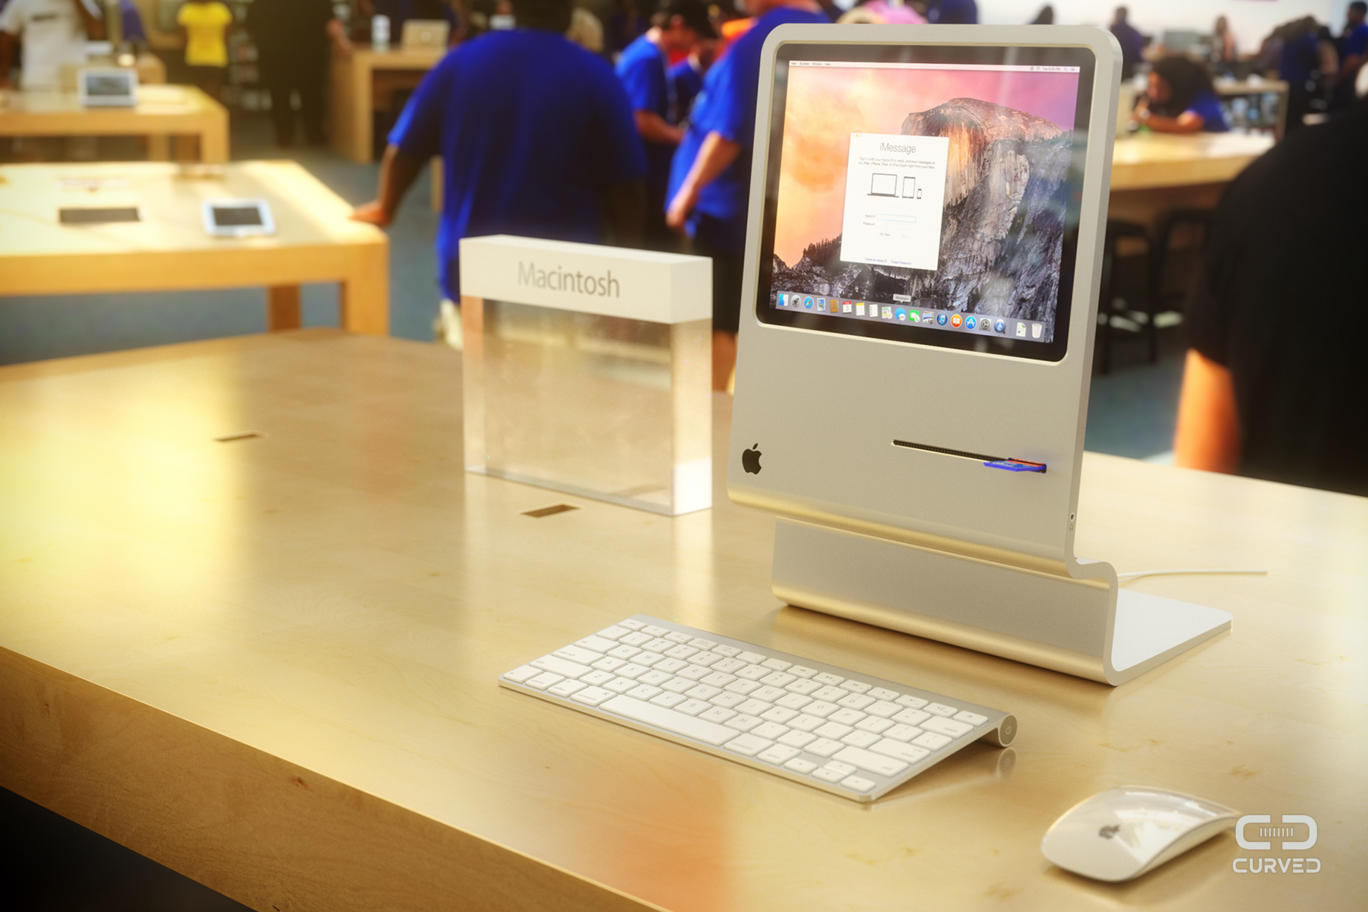 Photo of Conceito de Macintosh 2015